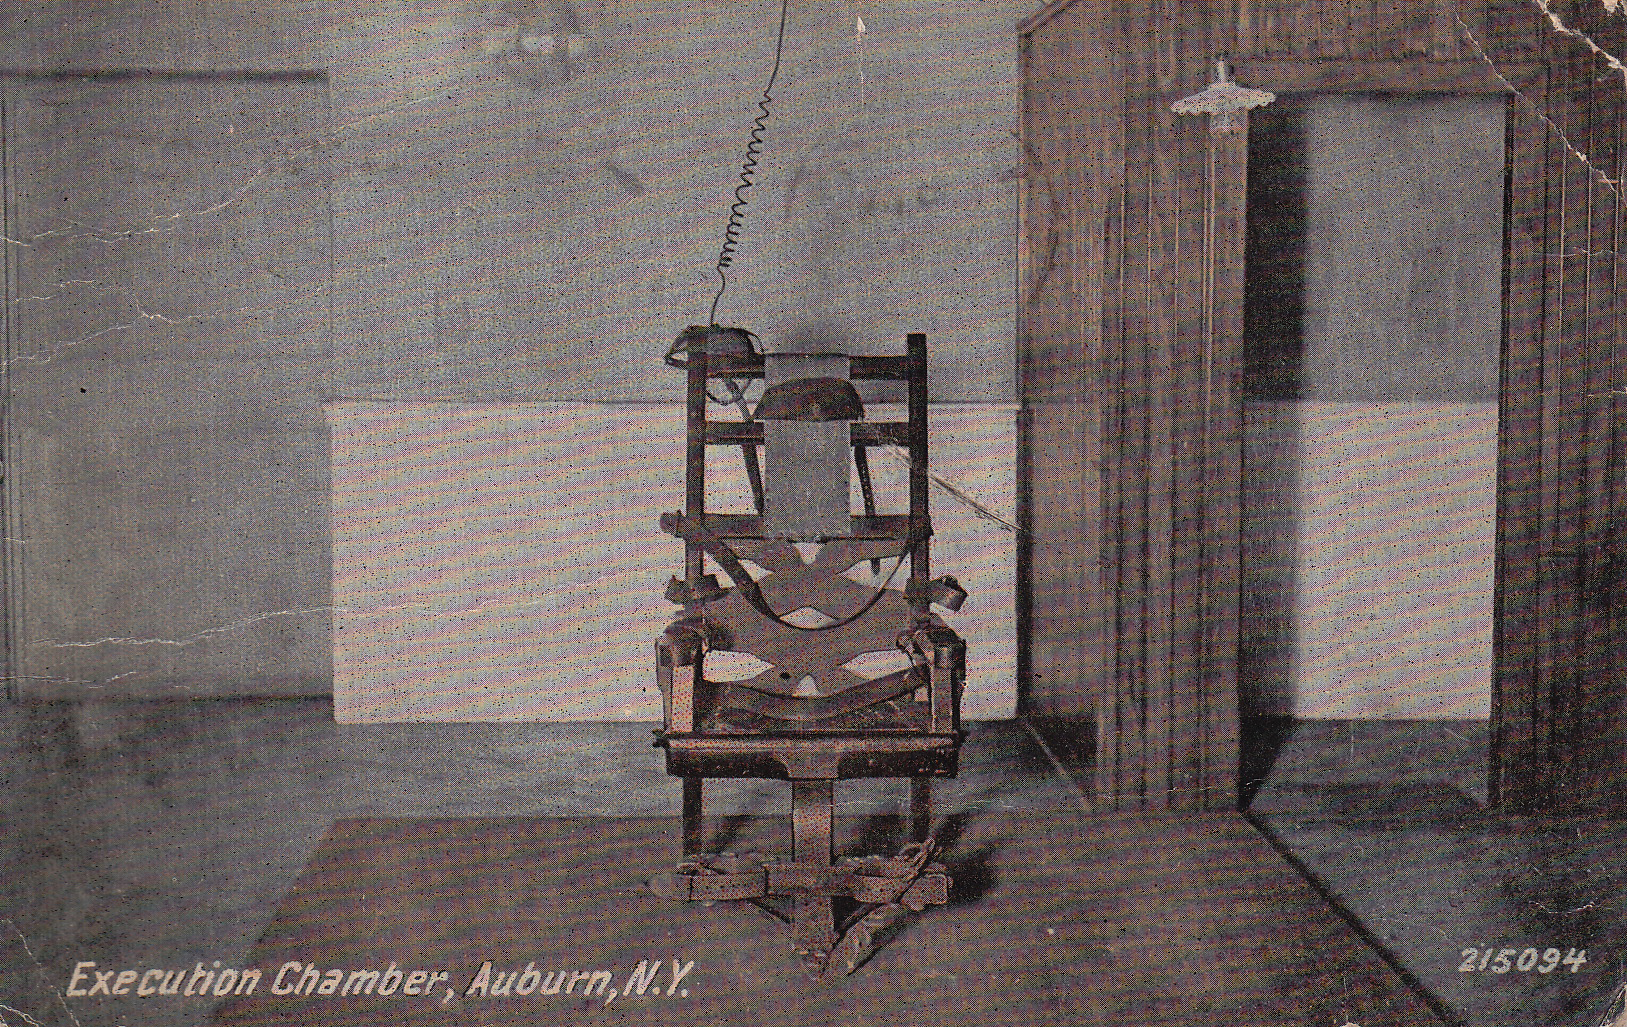 First electric chair victim - The